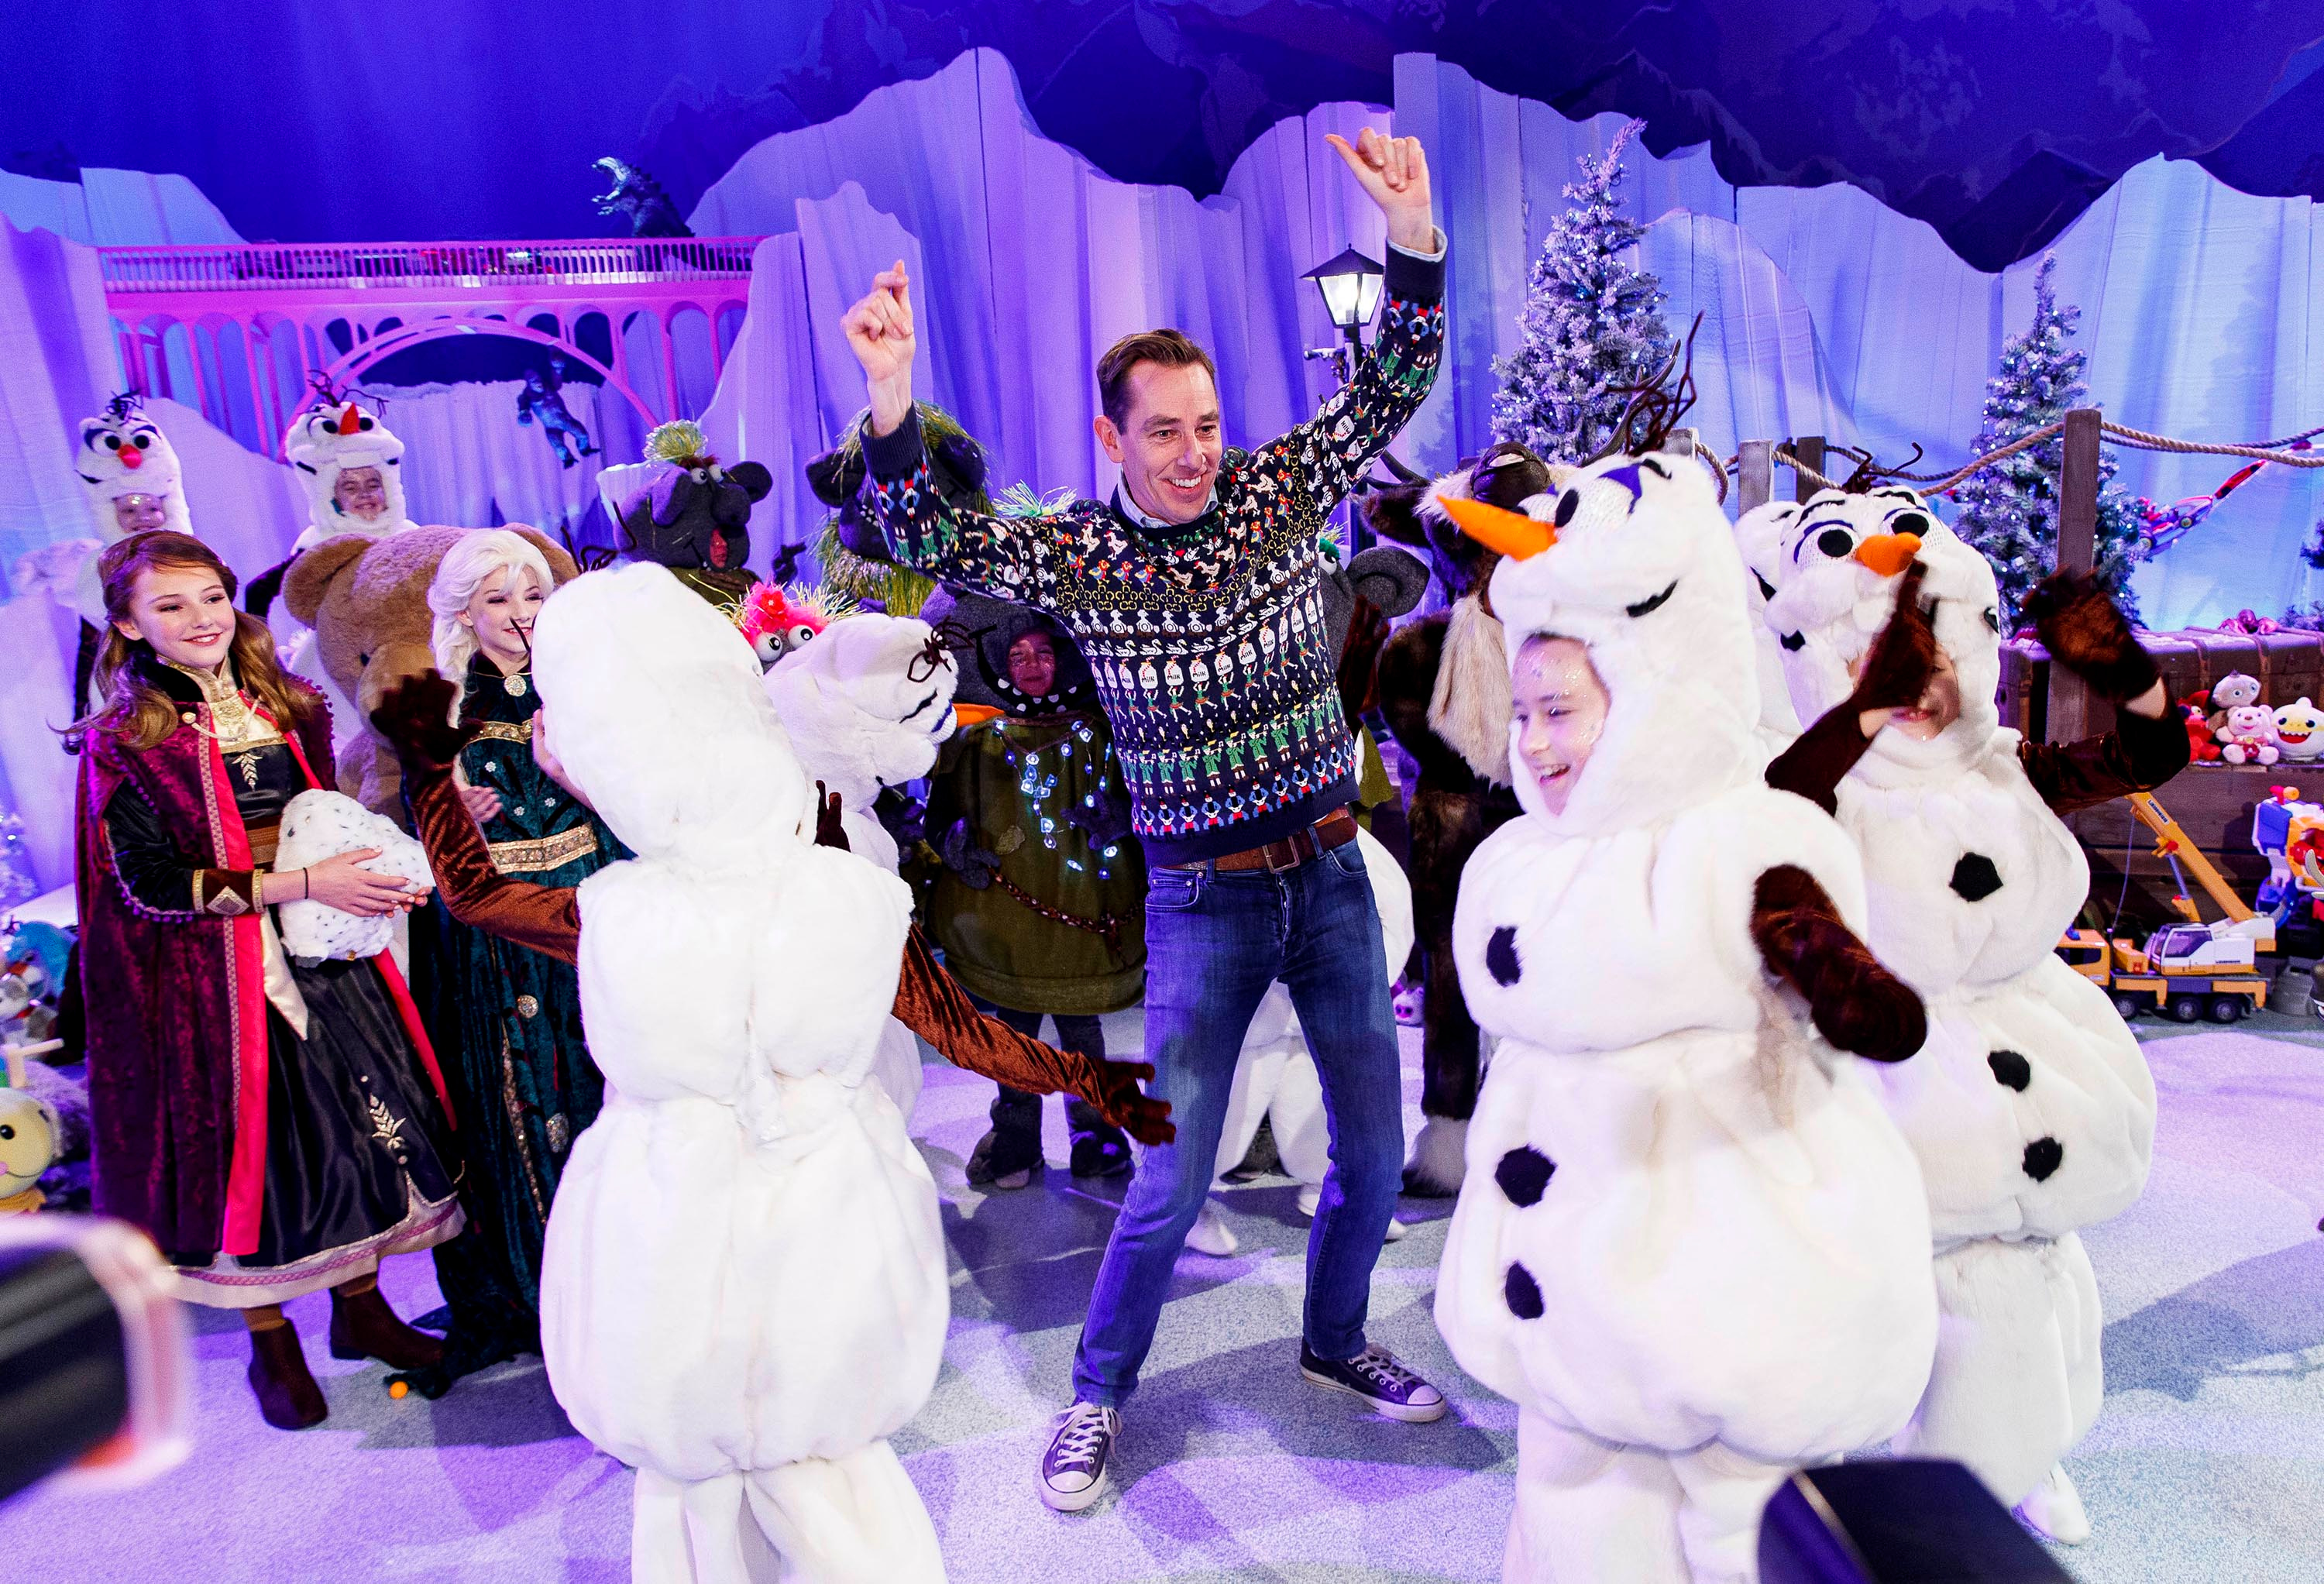 Ryan Tubridy pictured on the 2019 Late Late Toy Show 'Frozen' themed set.